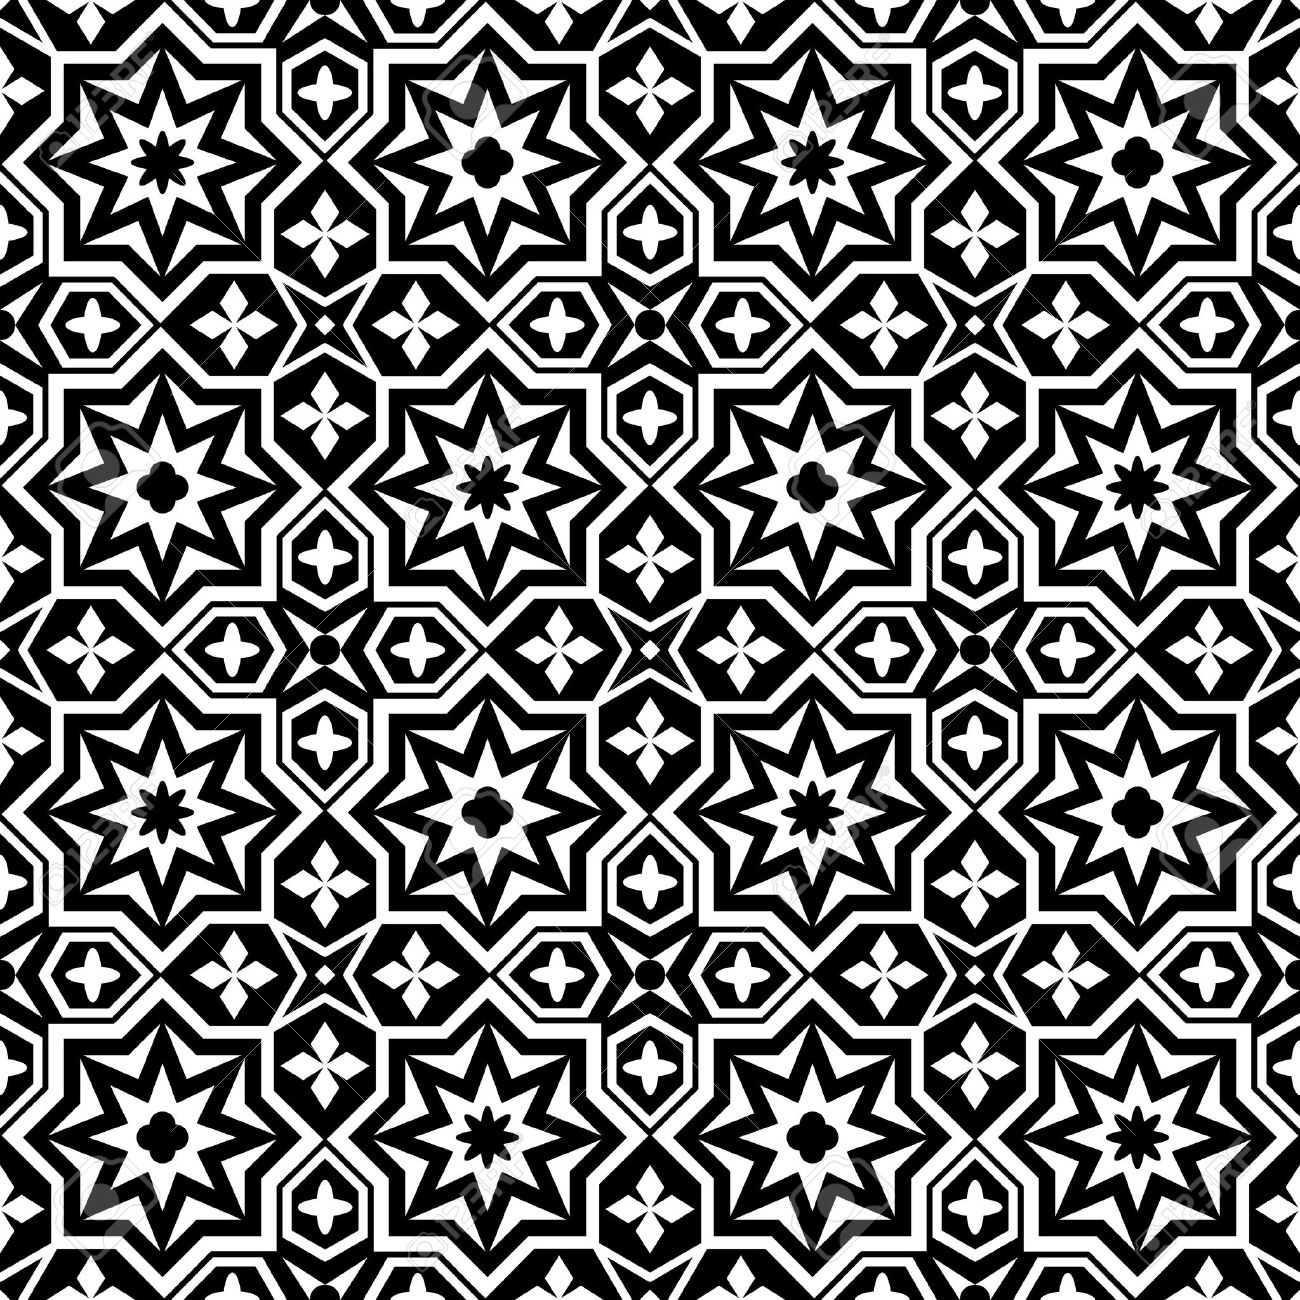 Abstract ornamental seamless pattern background black and white Stock Vector - 16428519